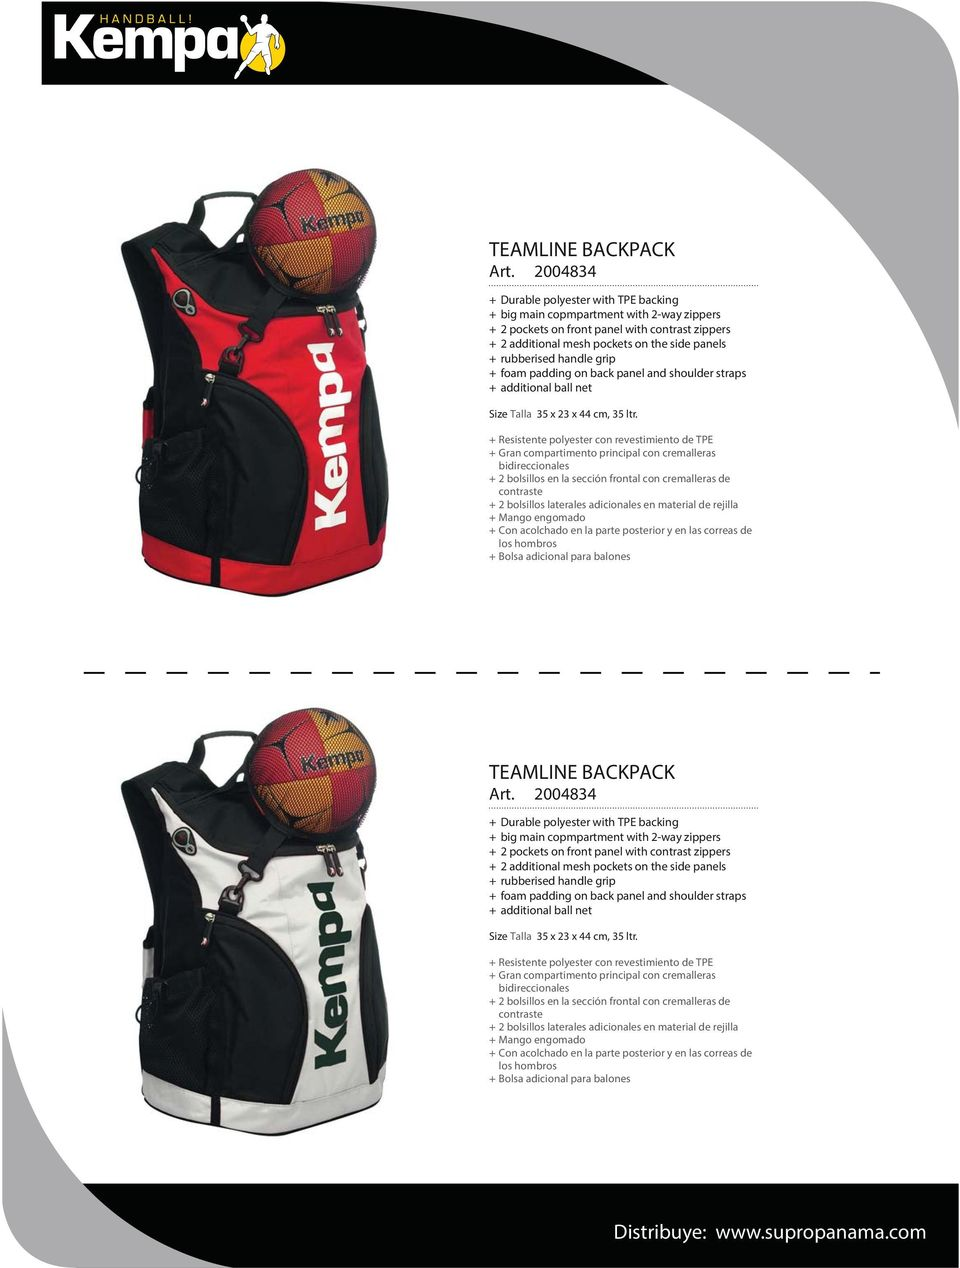 handle grip + foam padding on back panel and shoulder straps + additional ball net Size Talla 35 x 23 x 44 cm, 35 ltr.